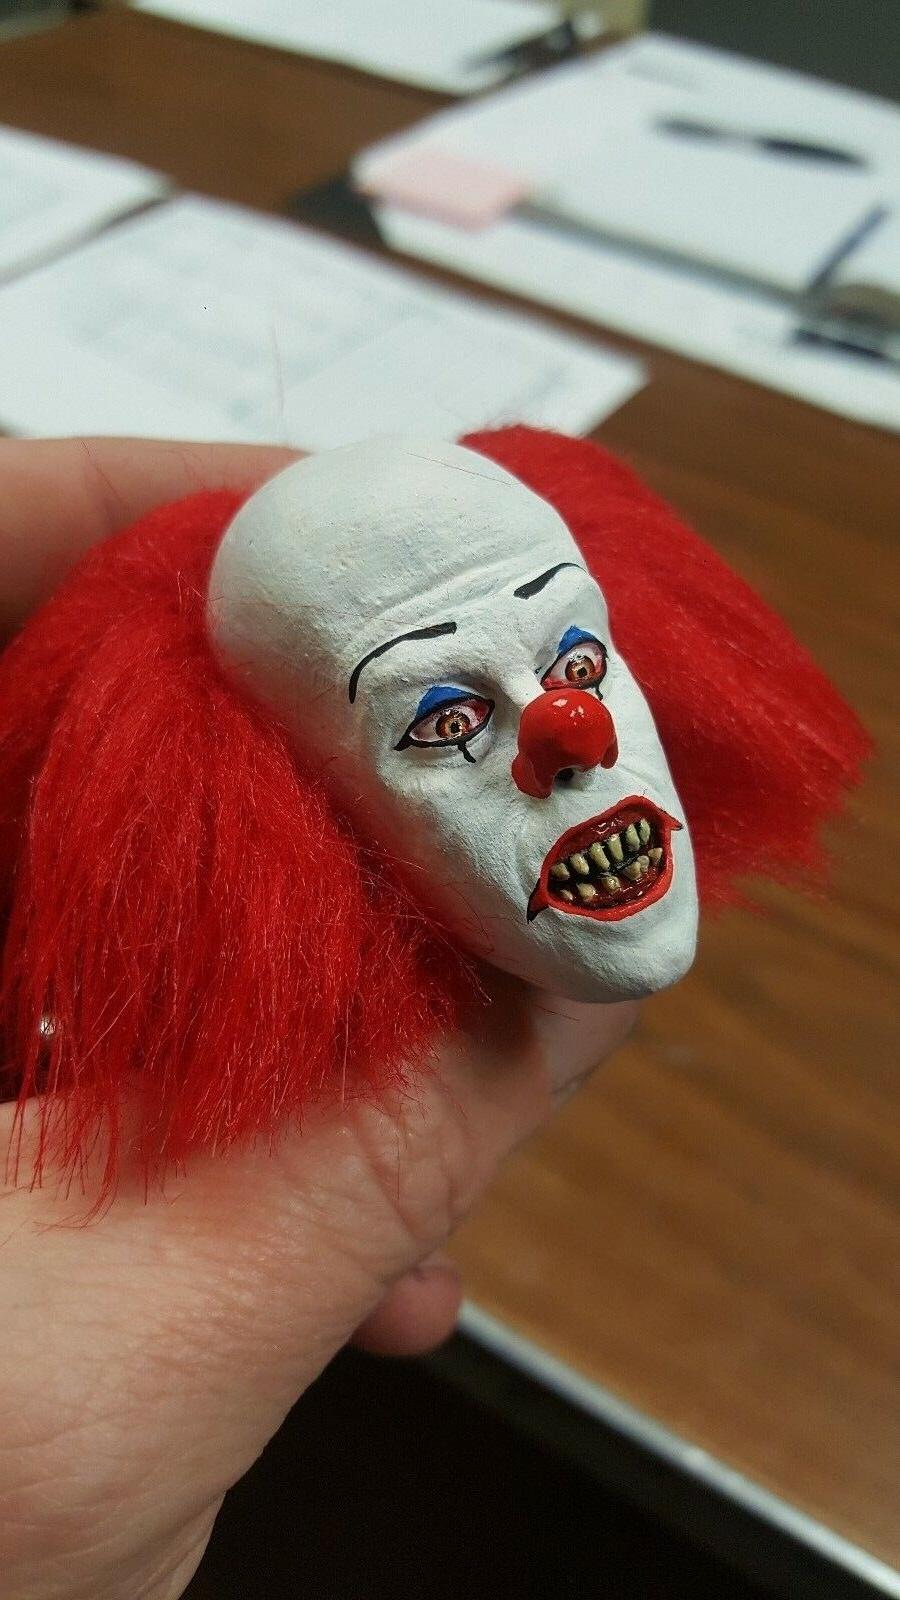 Tim clown fang version from it head for inch body